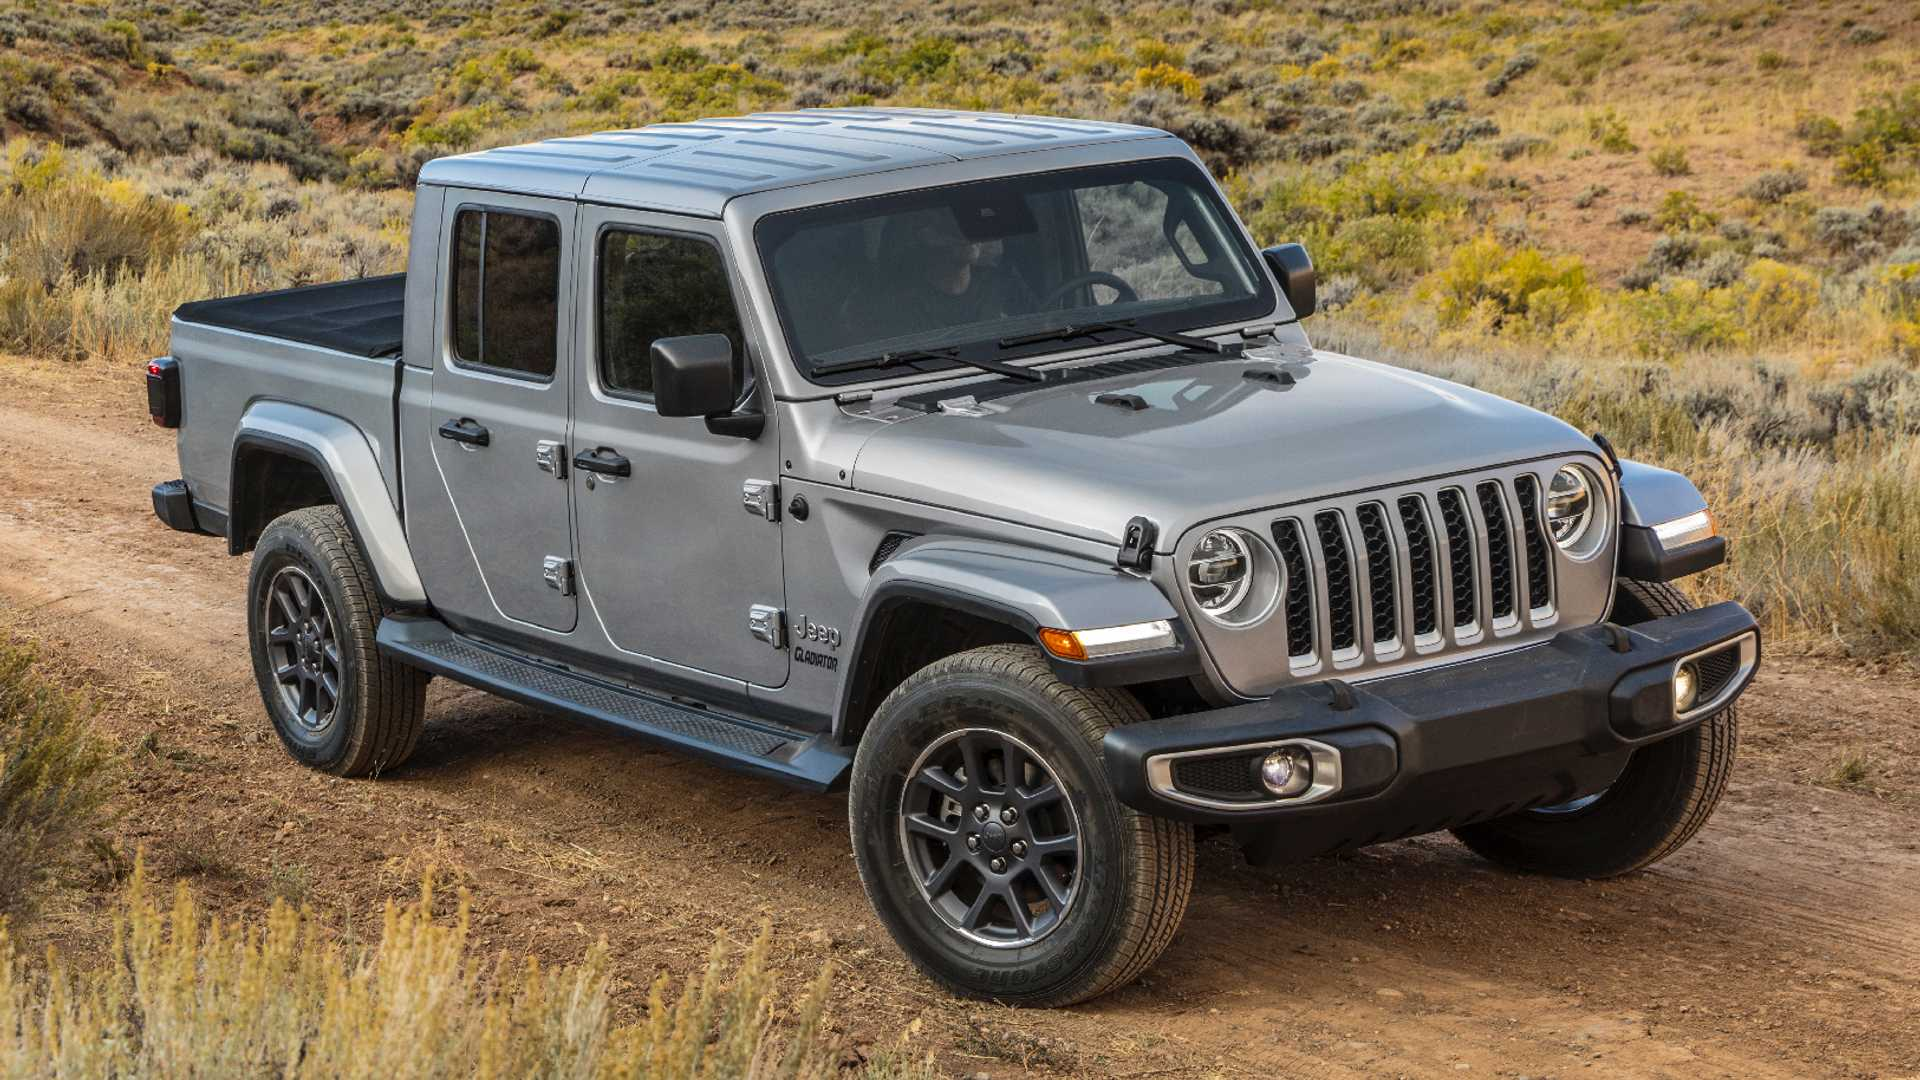 2021 Jeep Gladiator Willys 80th Anniversary Edition Info Leaks Out